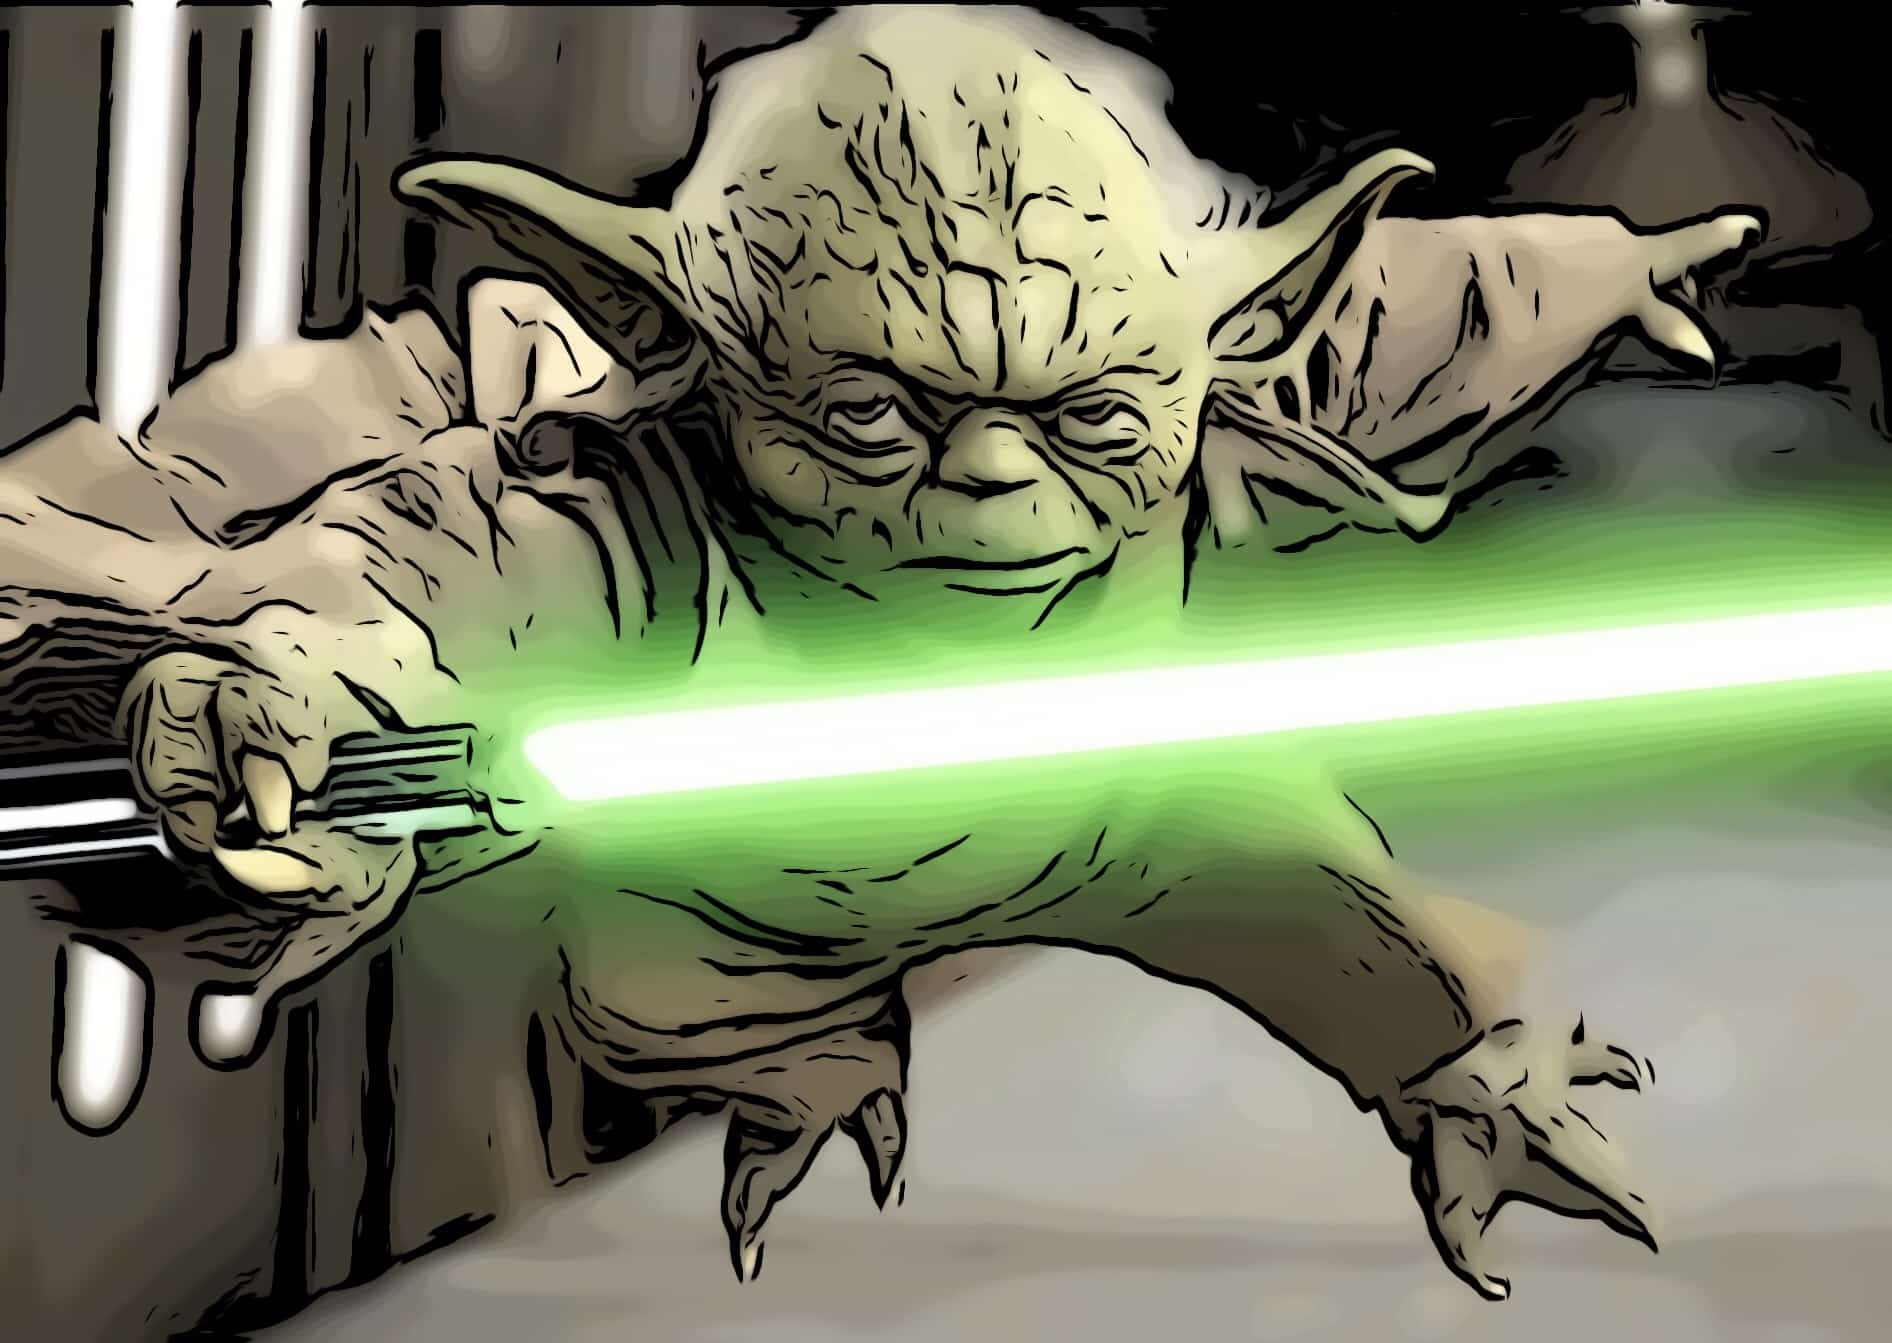 Yoda in a fight in one of the star wars movies